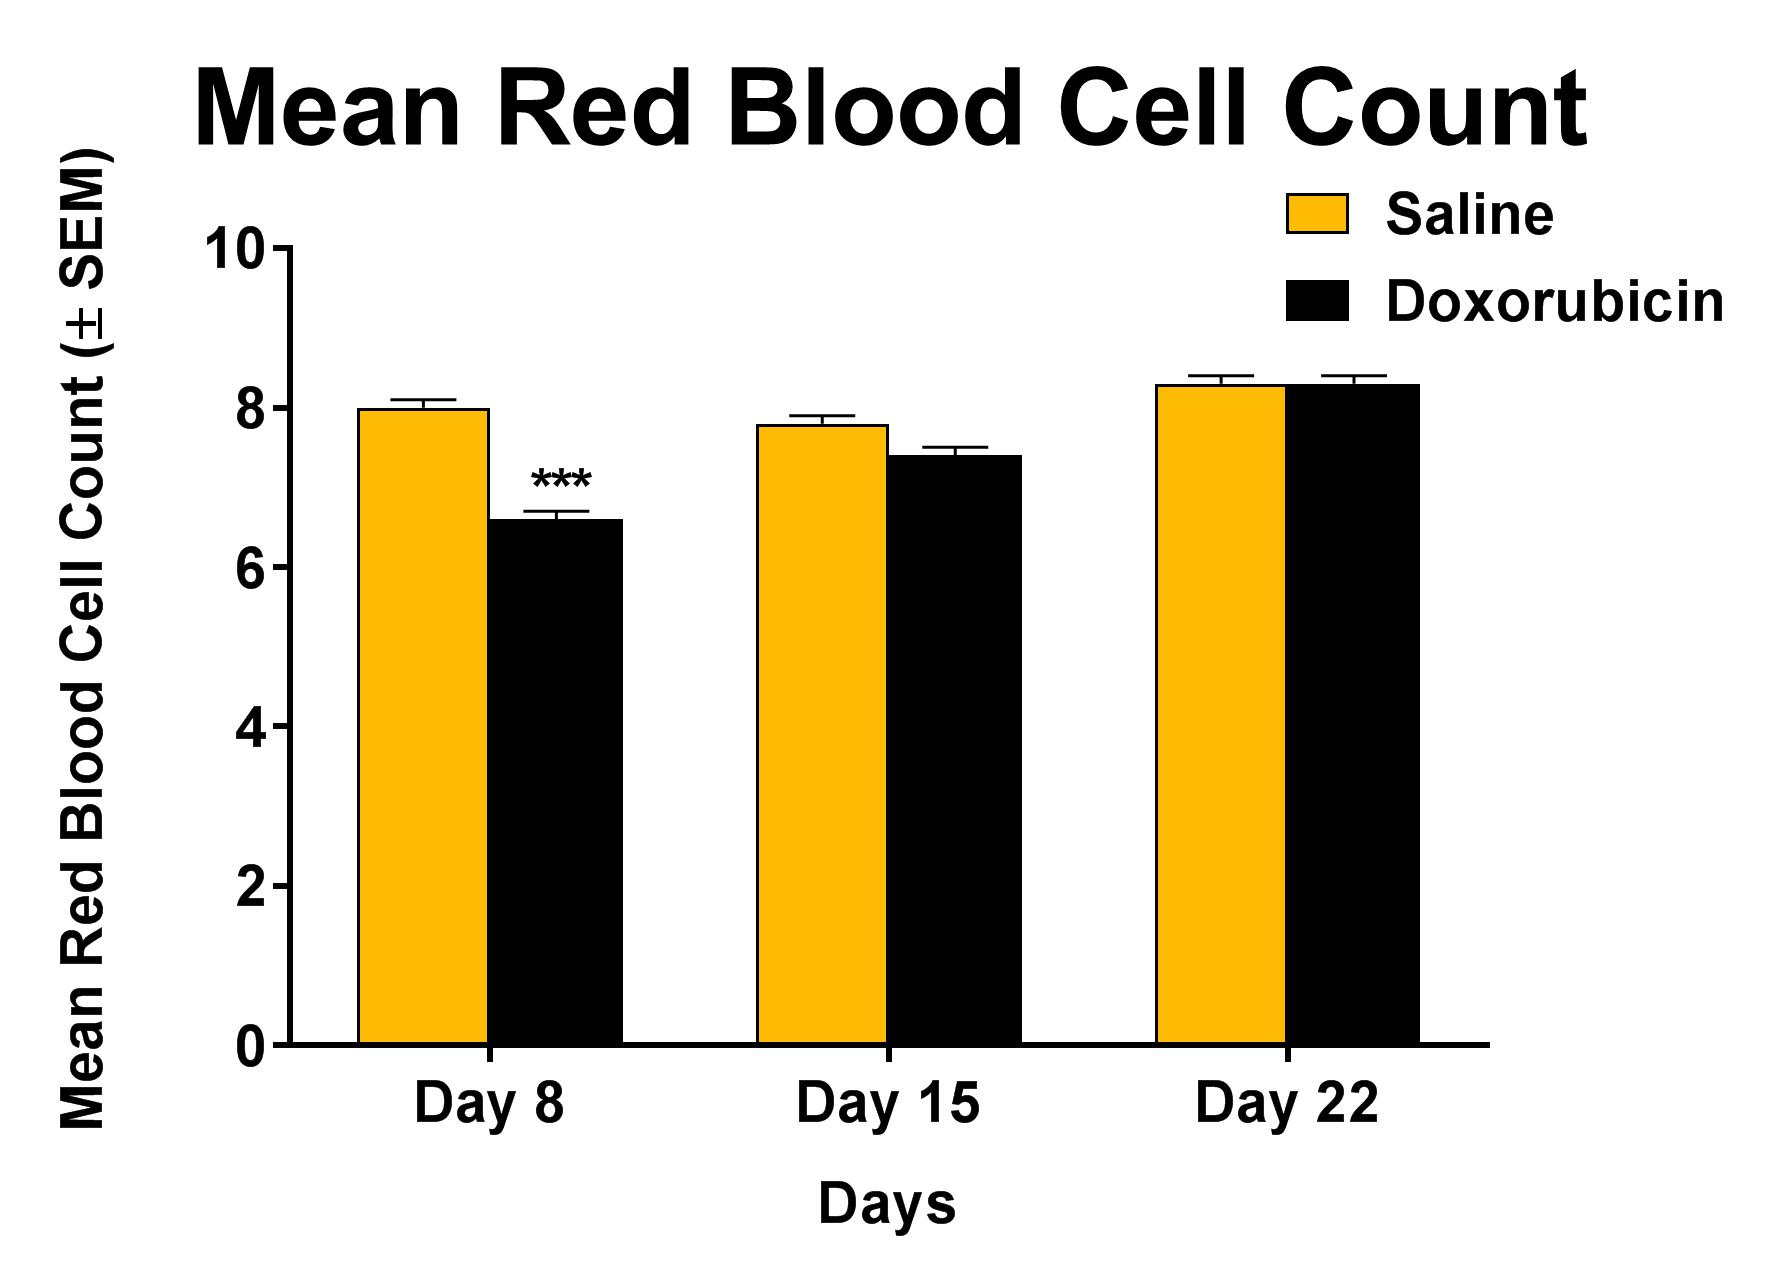 Red blood cell count as a result of one cycle of doxorubicin treatment (days 1-3)